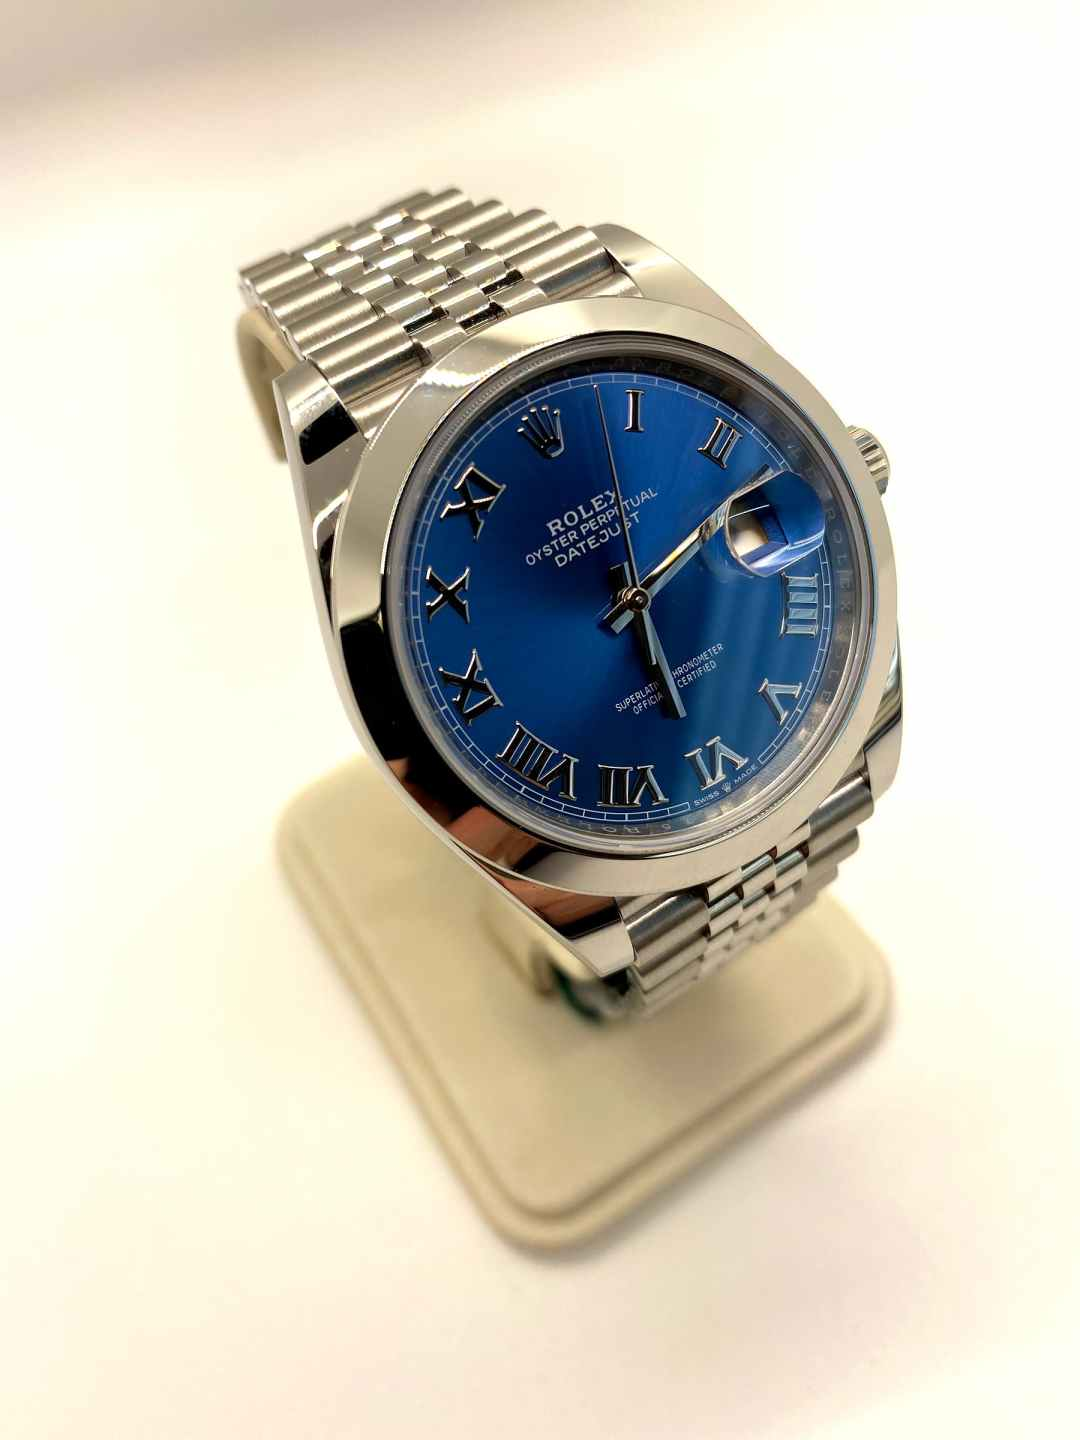 New Datejust 41mm Men's Rolex Watch with Box and Papers